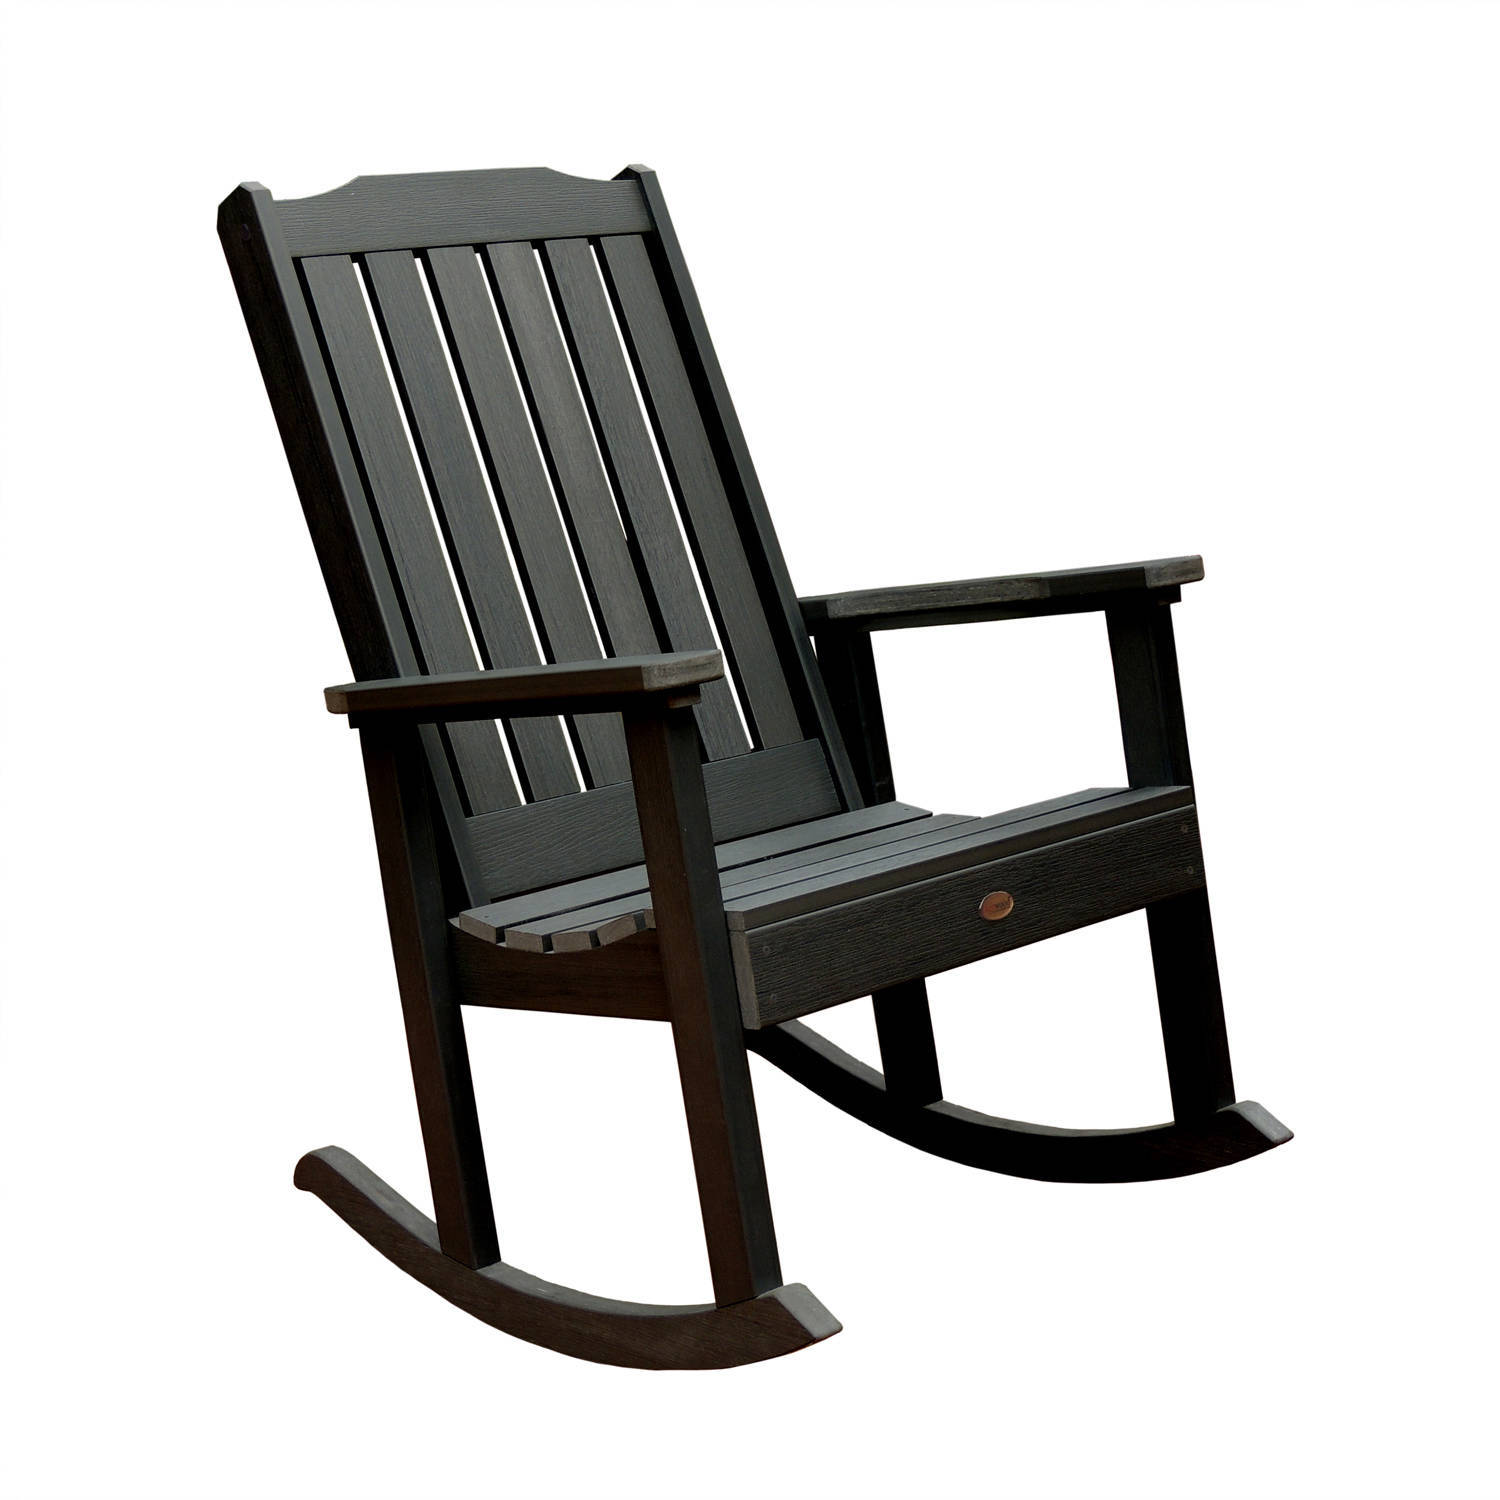 highwood® Eco-Friendly Recycled Plastic Lehigh Rocking Chair